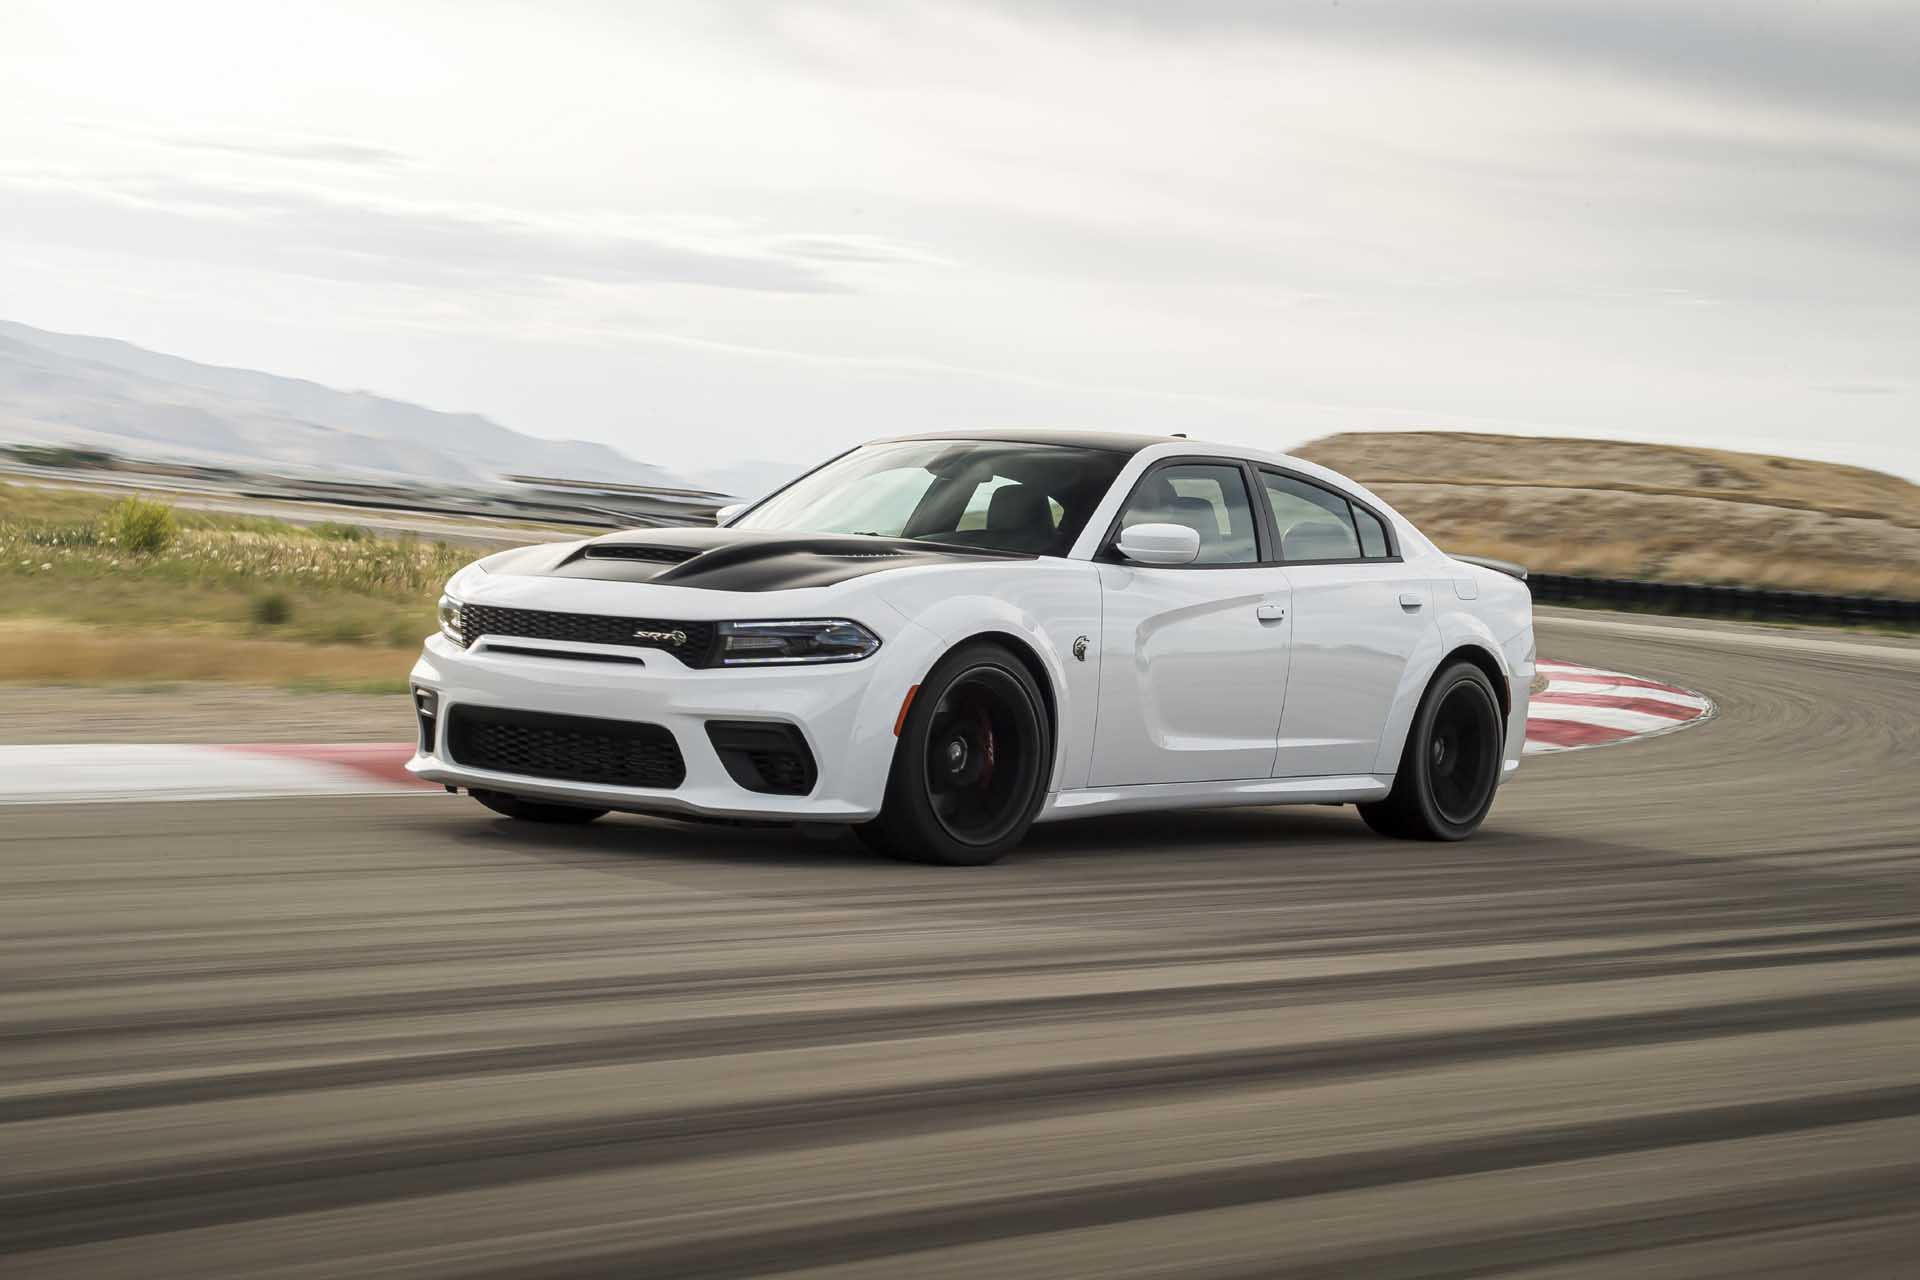 797 Horsepower 2021 Dodge Charger Srt Hellcat Redeye Is Here To Pick Up The Kids